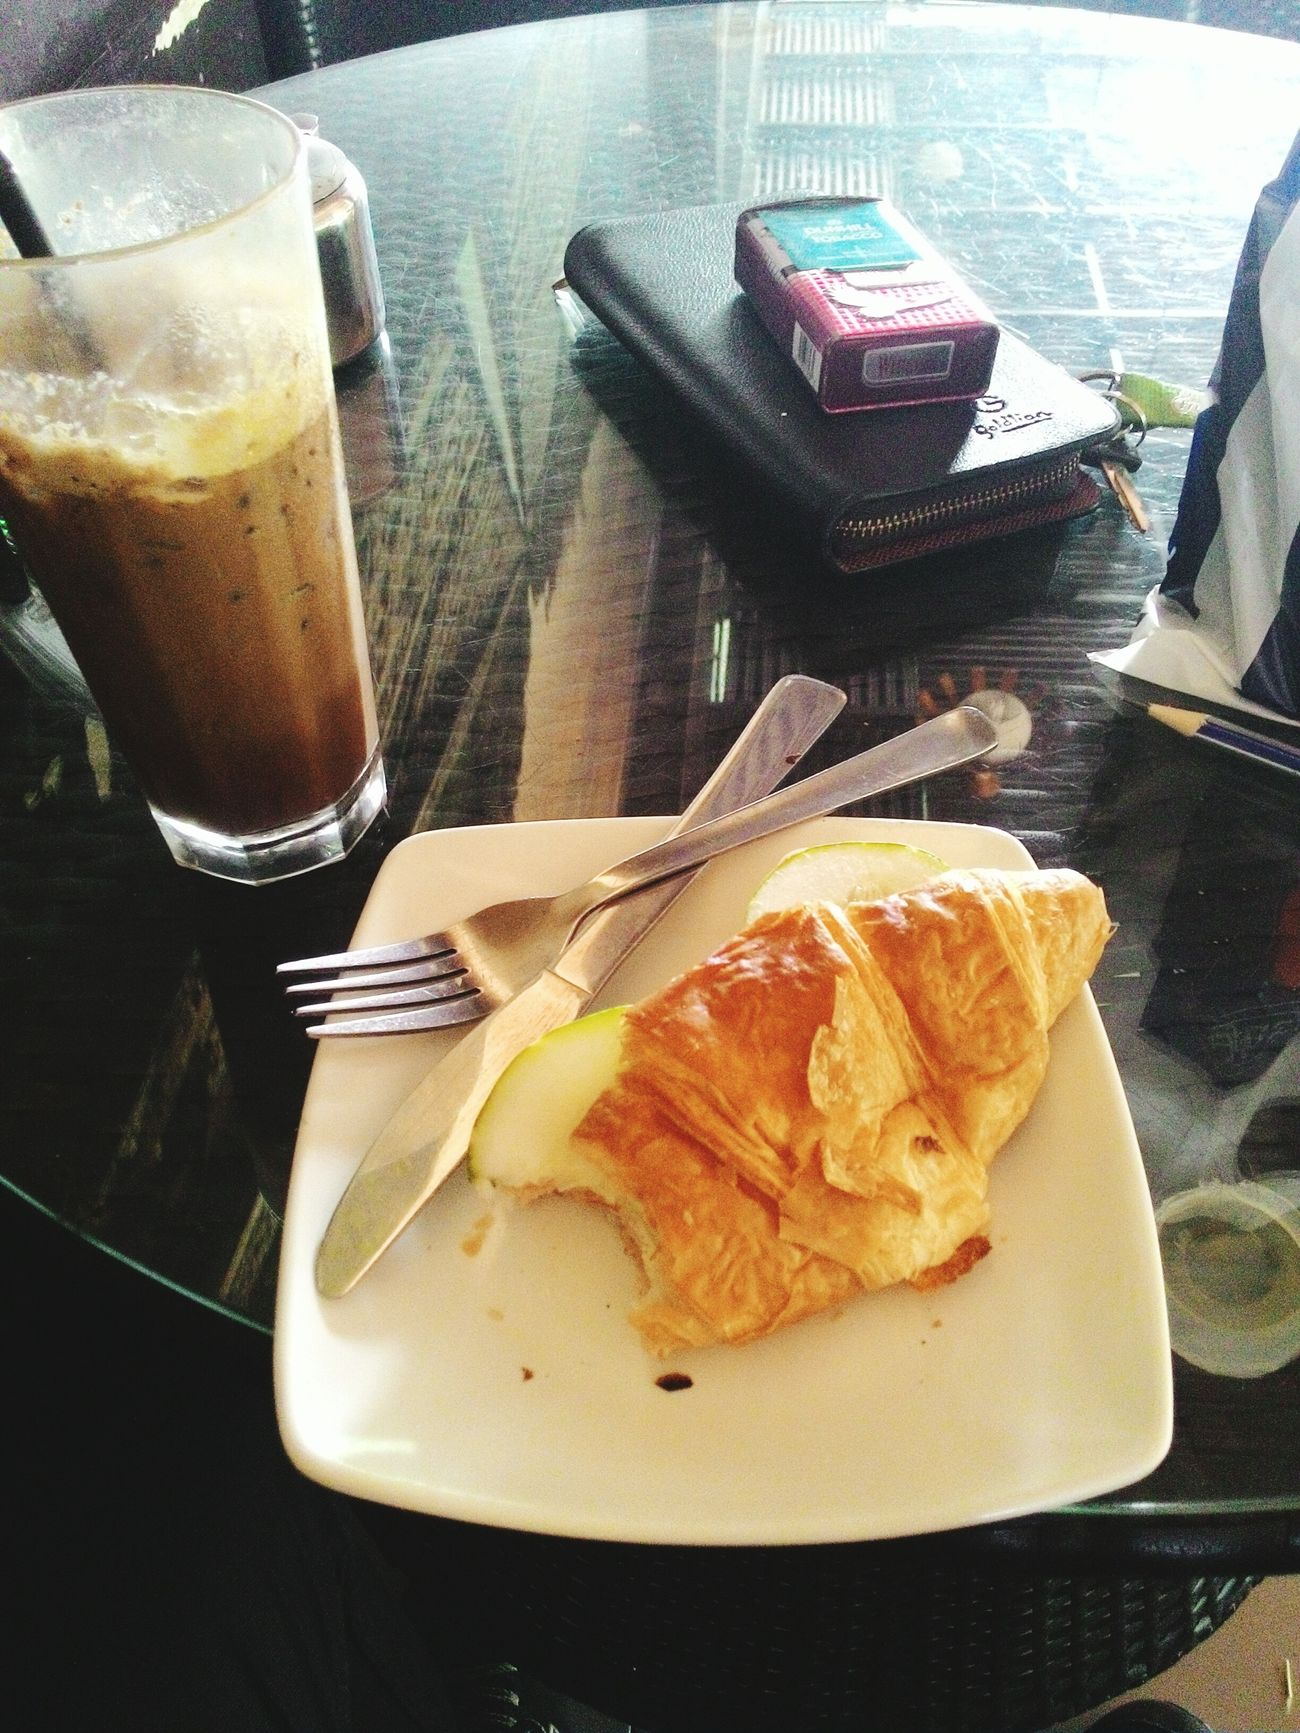 Why need fork with knife?? Sandwich Milo Great Drink Winston Delicious